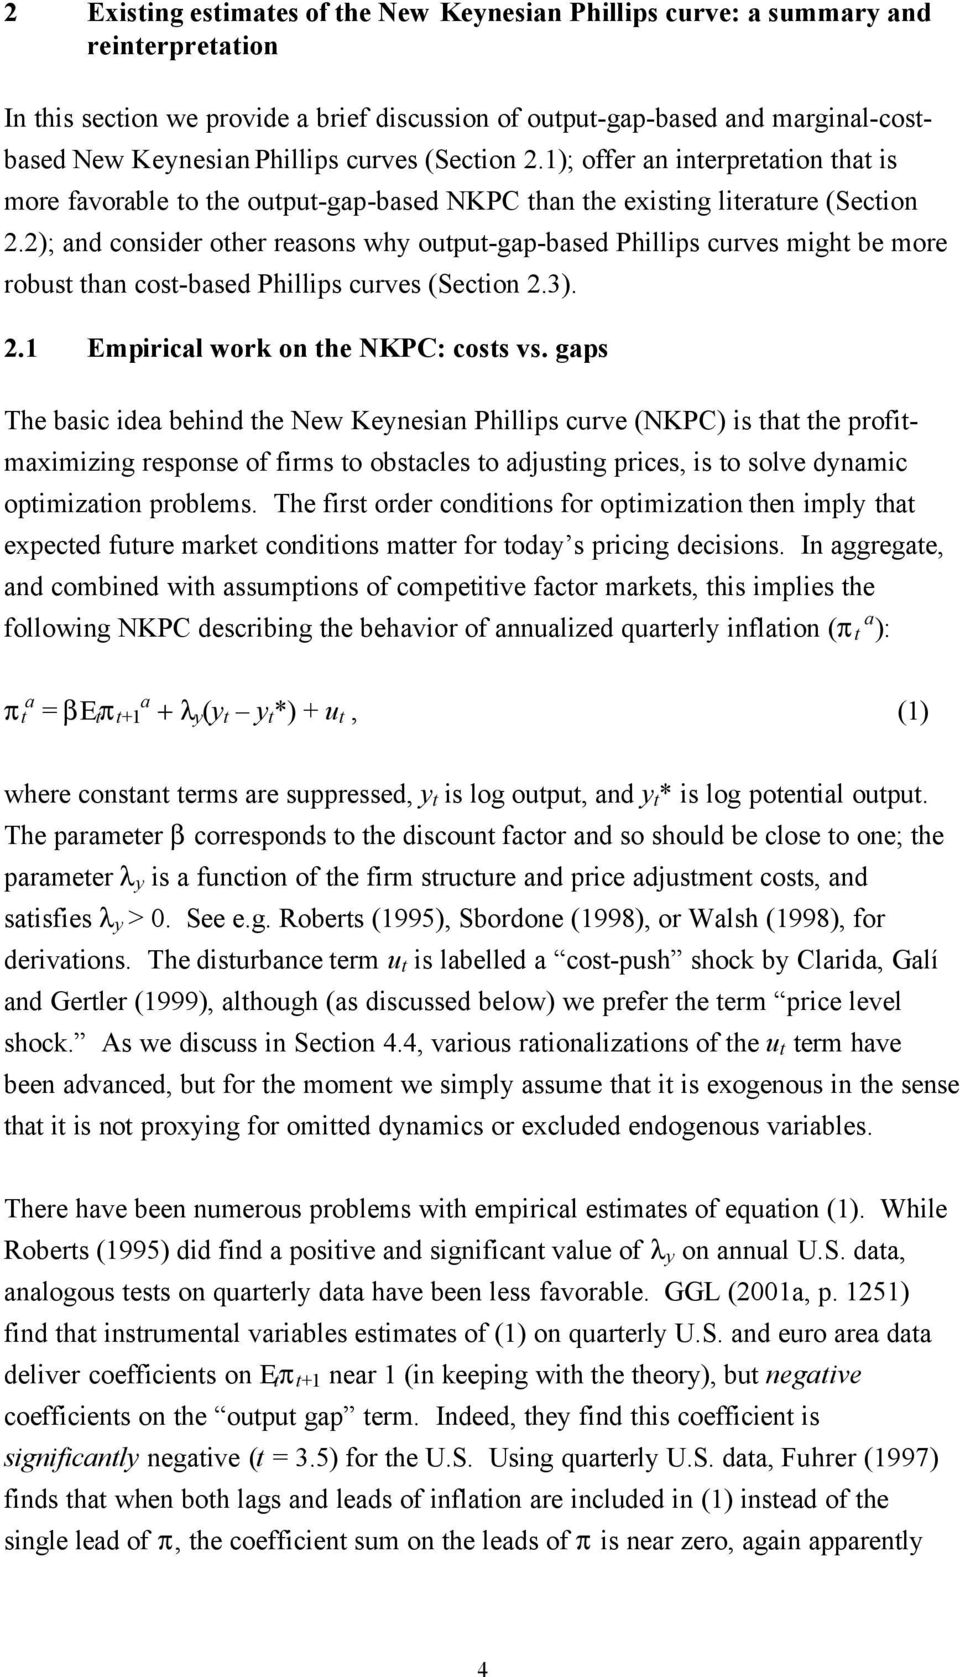 2); and consider other reasons why output-gap-based Phillips curves might be more robust than cost-based Phillips curves (Section 2.3). 2.1 Empirical work on the NKPC: costs vs.